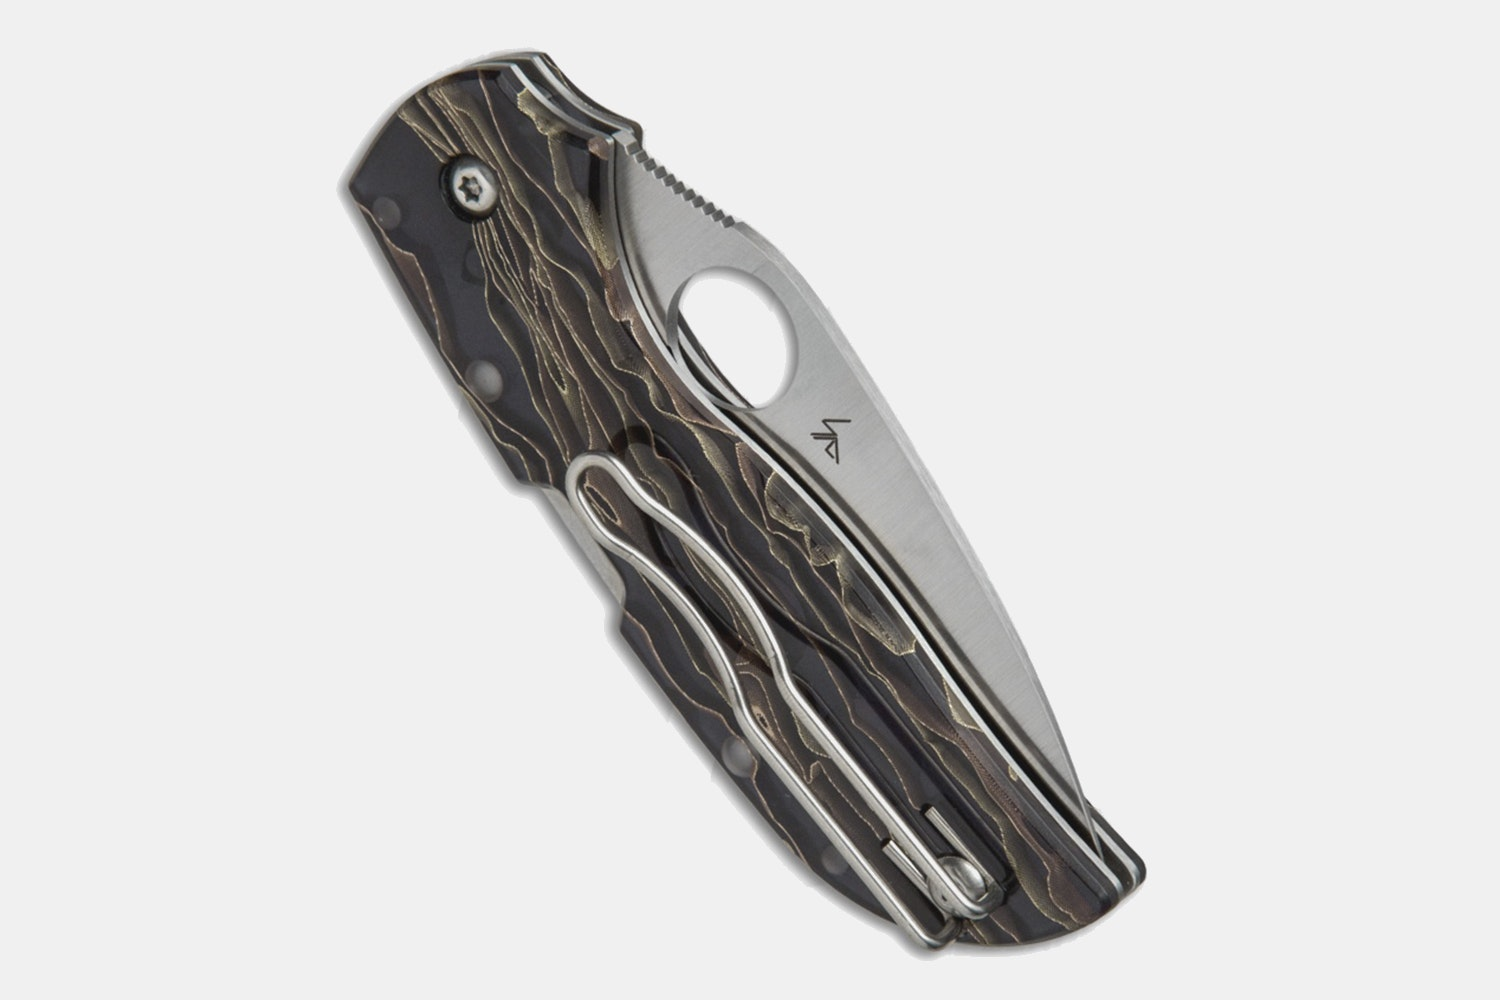 Spyderco Chaparral Raffir Noble Folding Knife